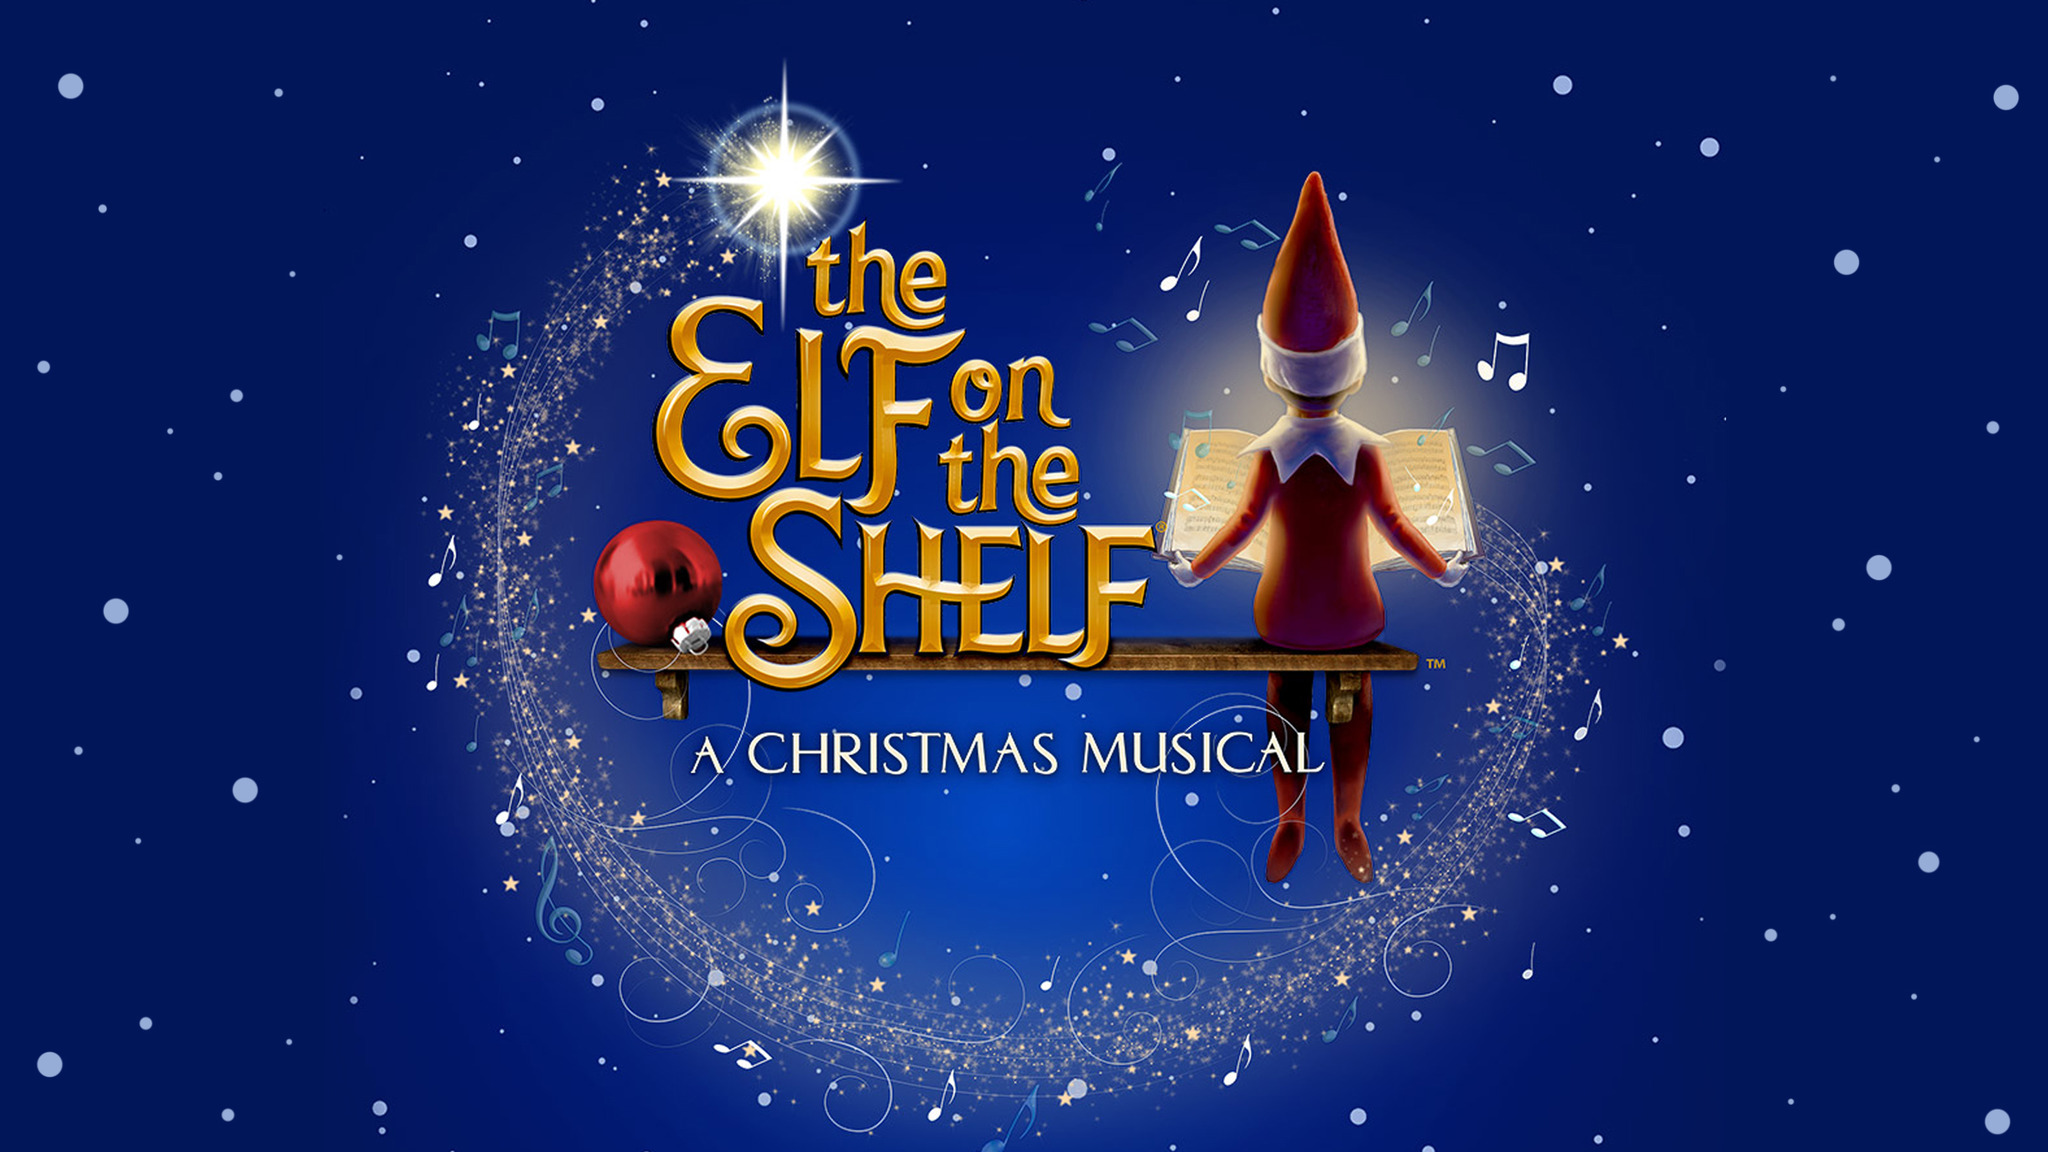 The Elf On The Shelf: A Christmas Musical at Genesee Theatre